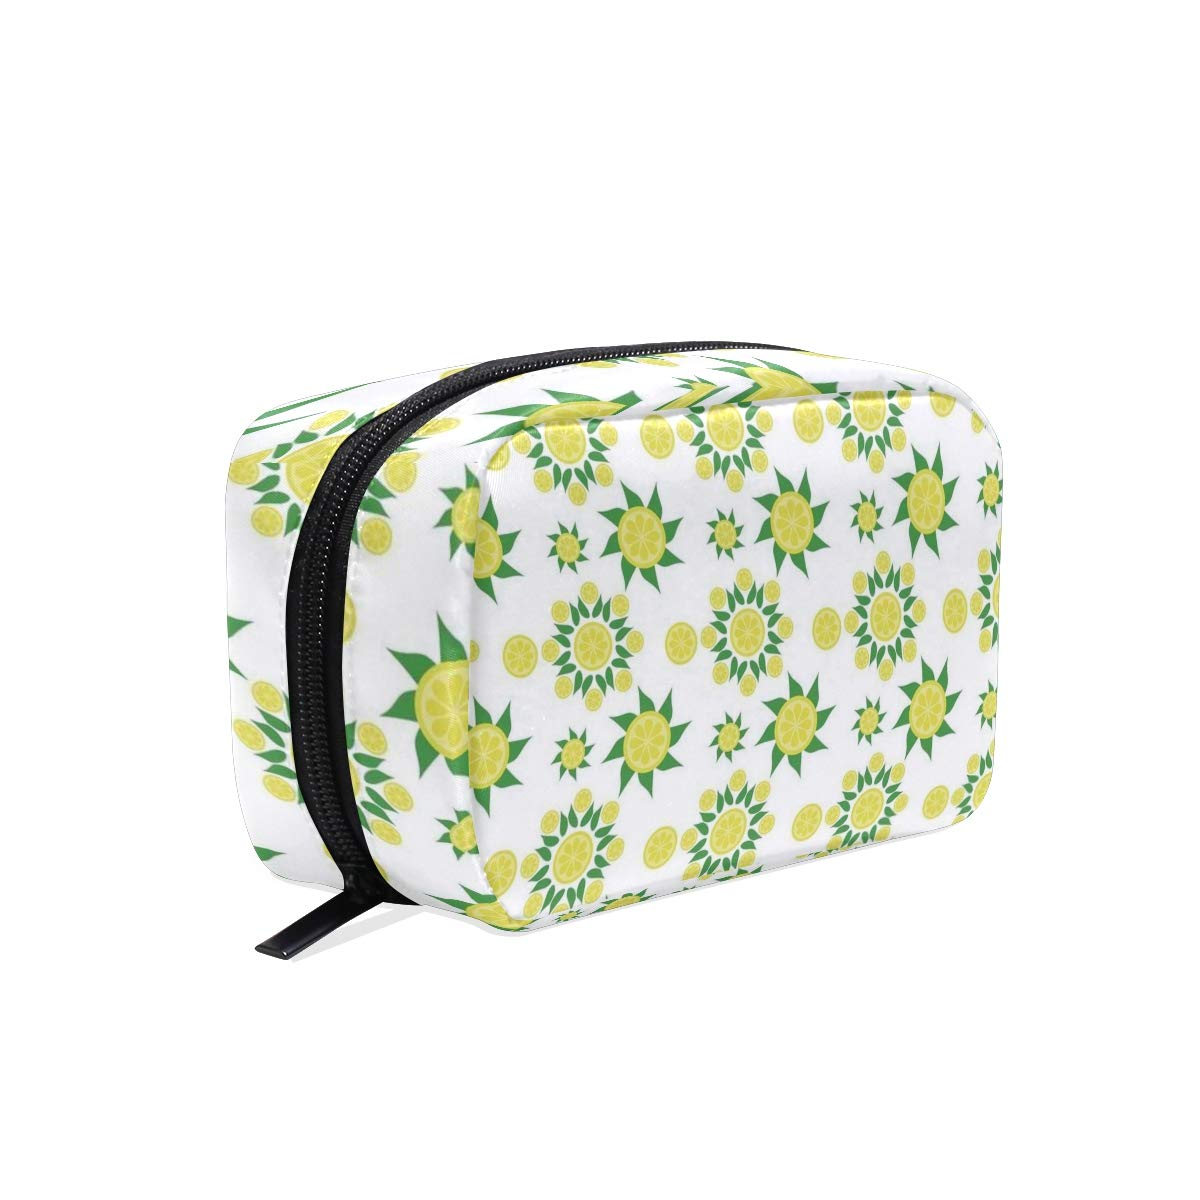 4b5c1ae3431e Amazon.com : Cosmetic Bag Lemon Flower Girls Makeup Organizer Box ...